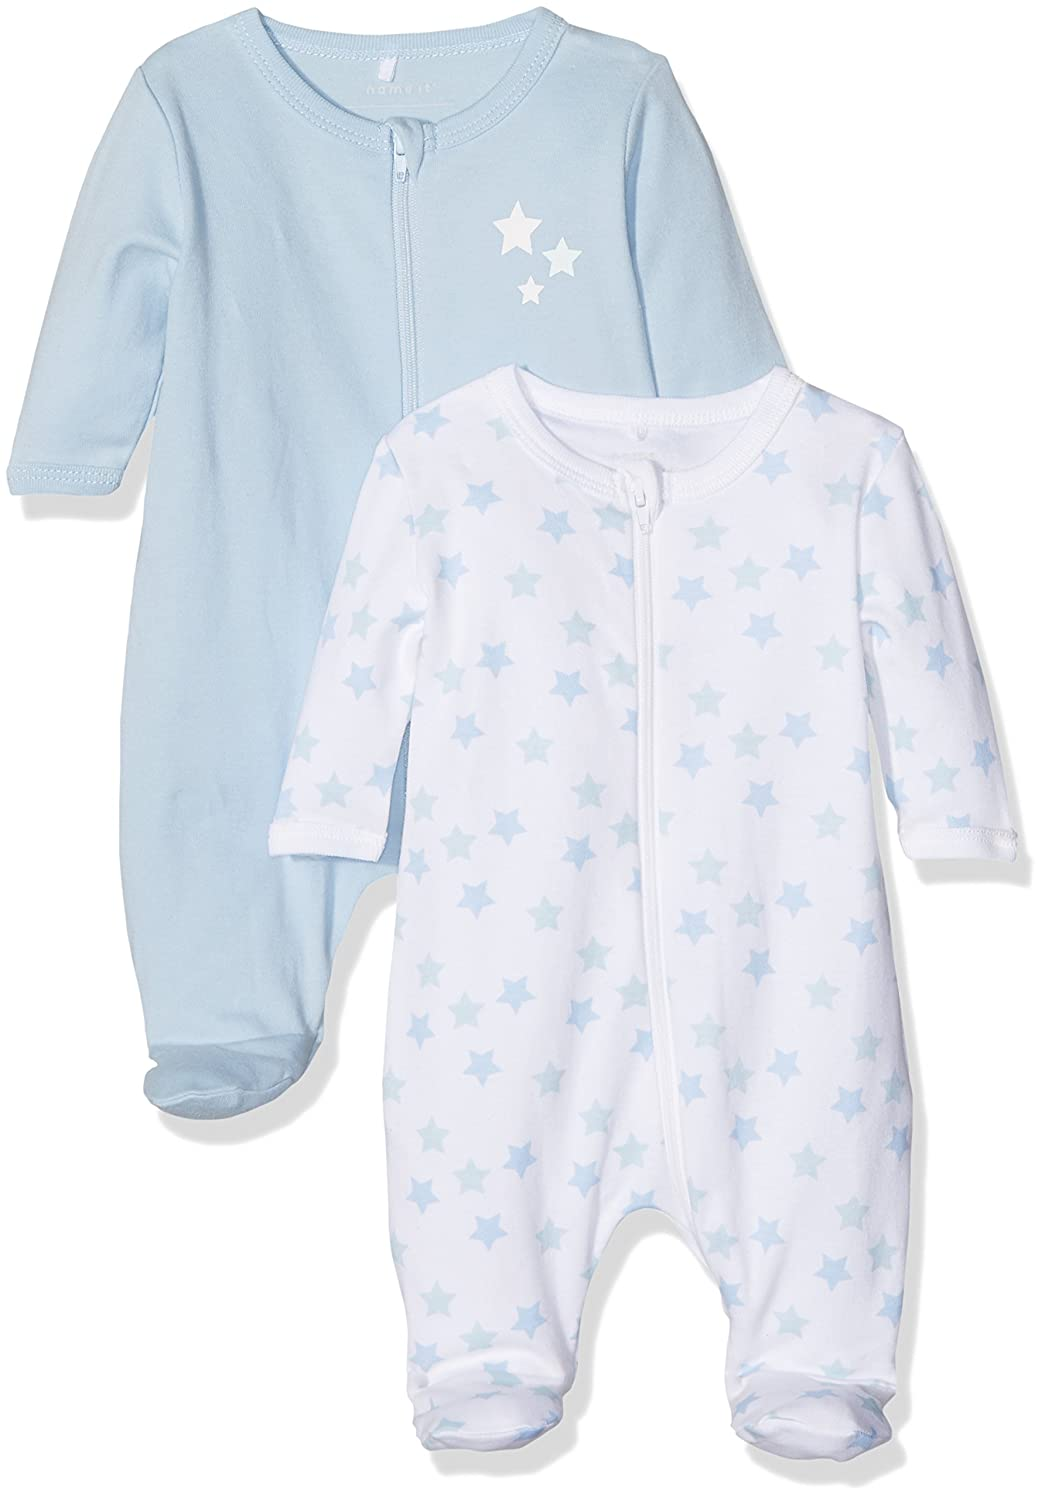 Name It Baby Boys' Sleepsuit Pack of 2 13145660